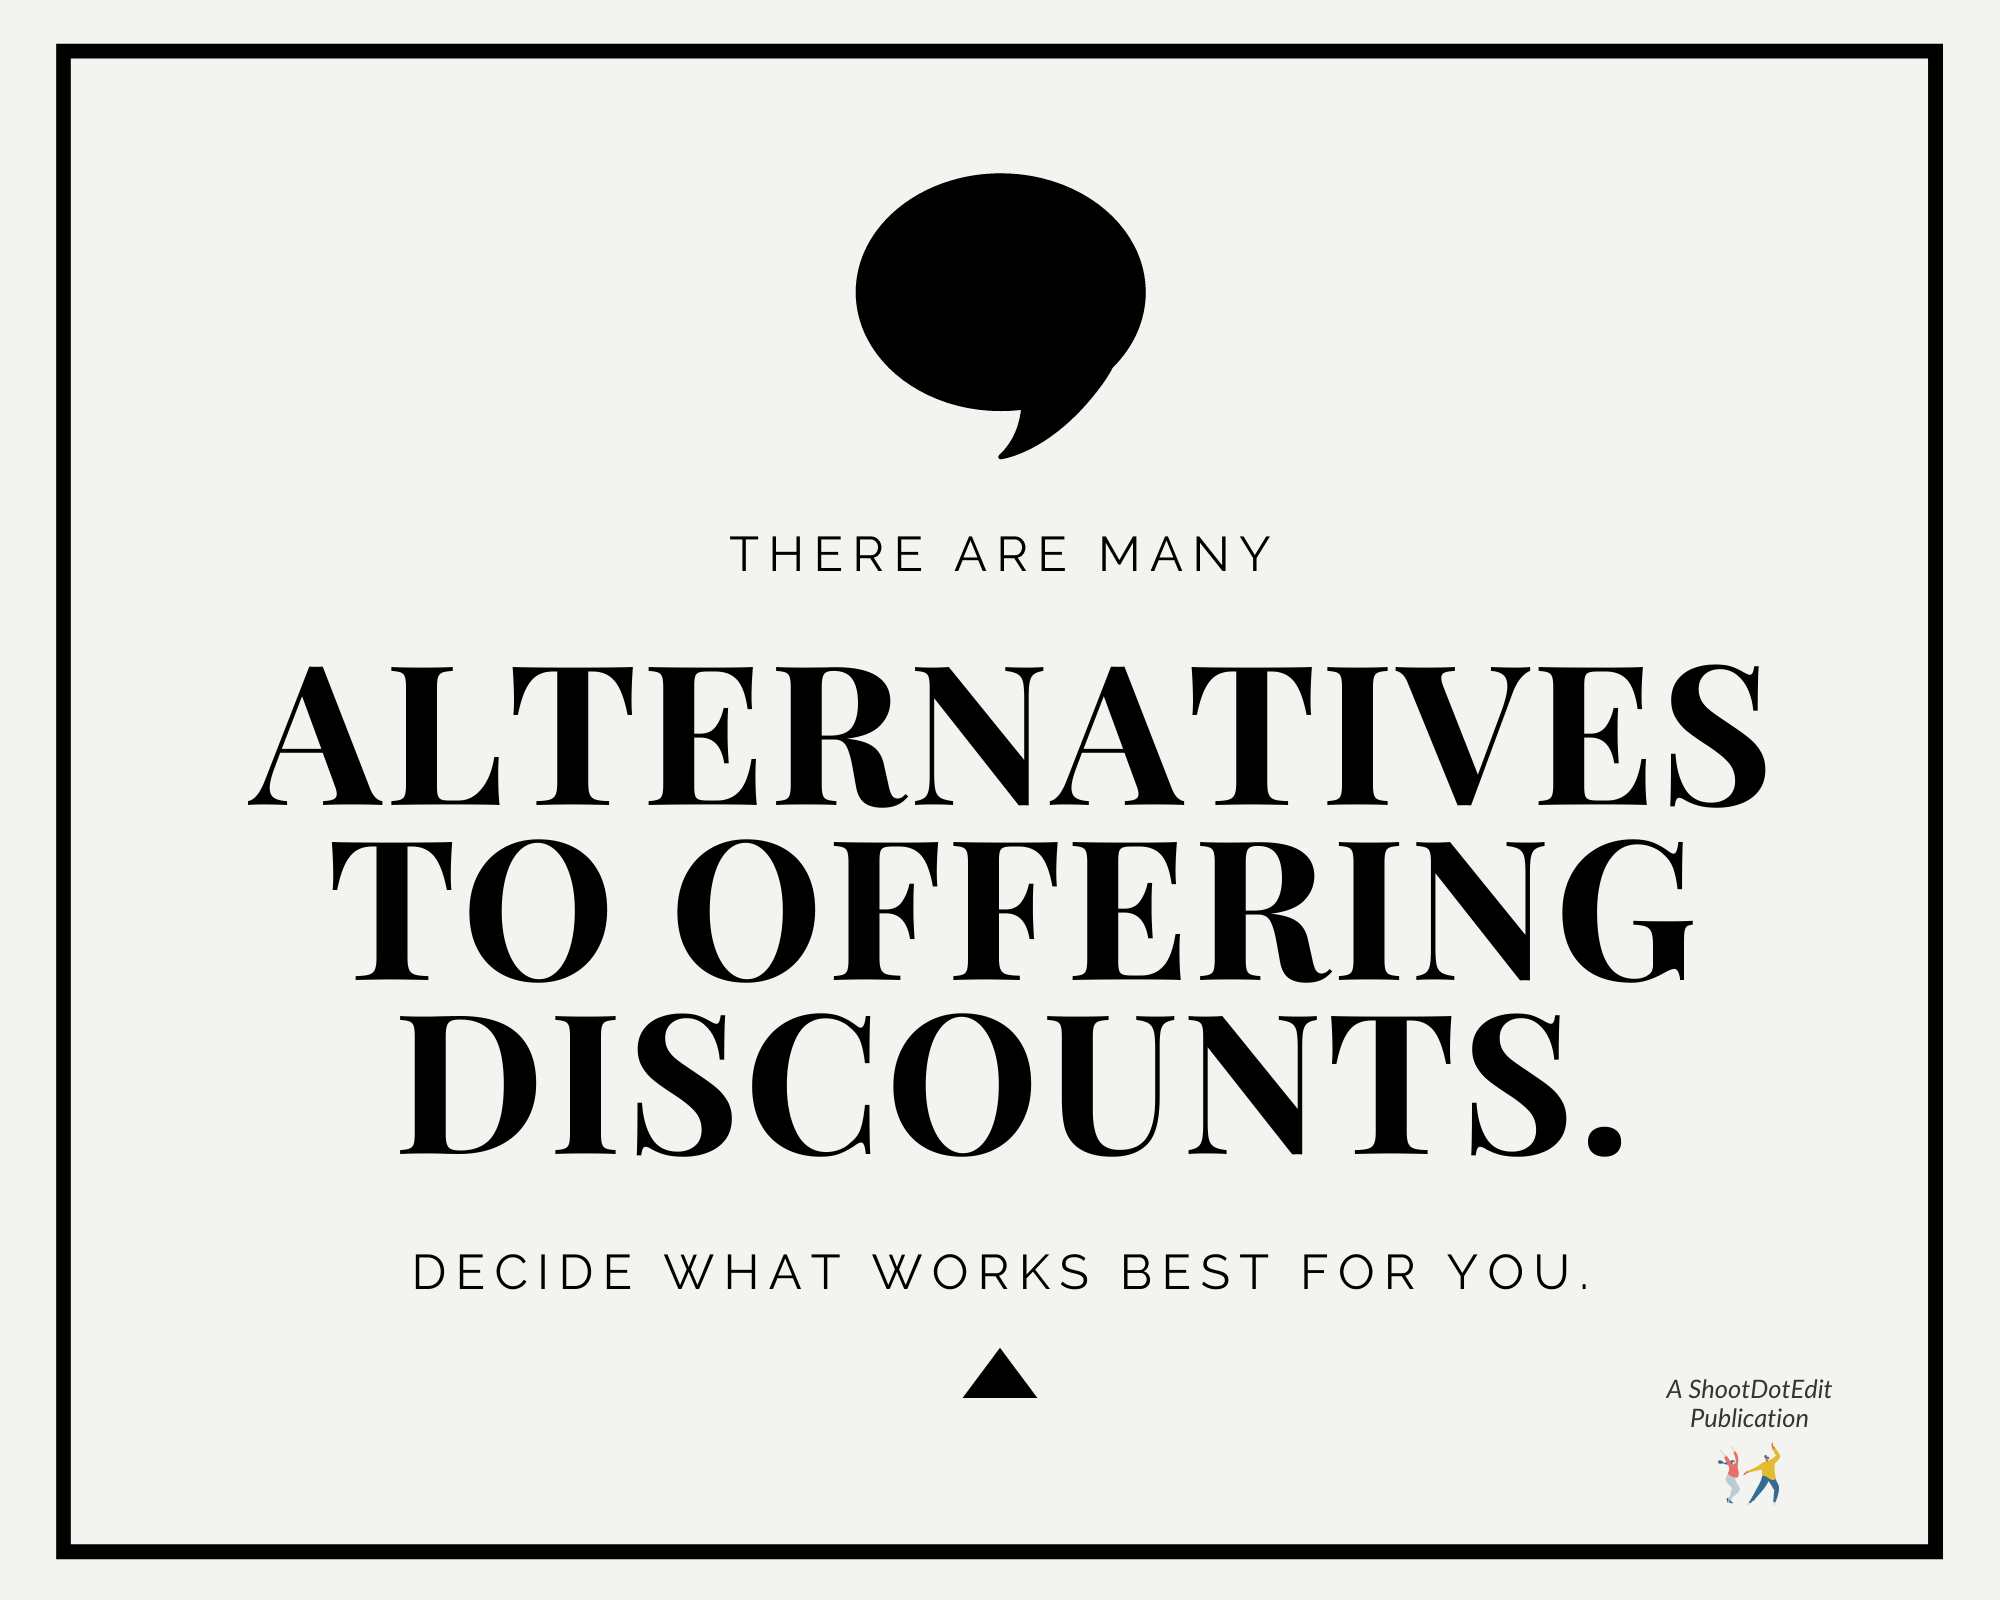 Infographic - There are many alternatives to offering discounts. Decide what works best for you